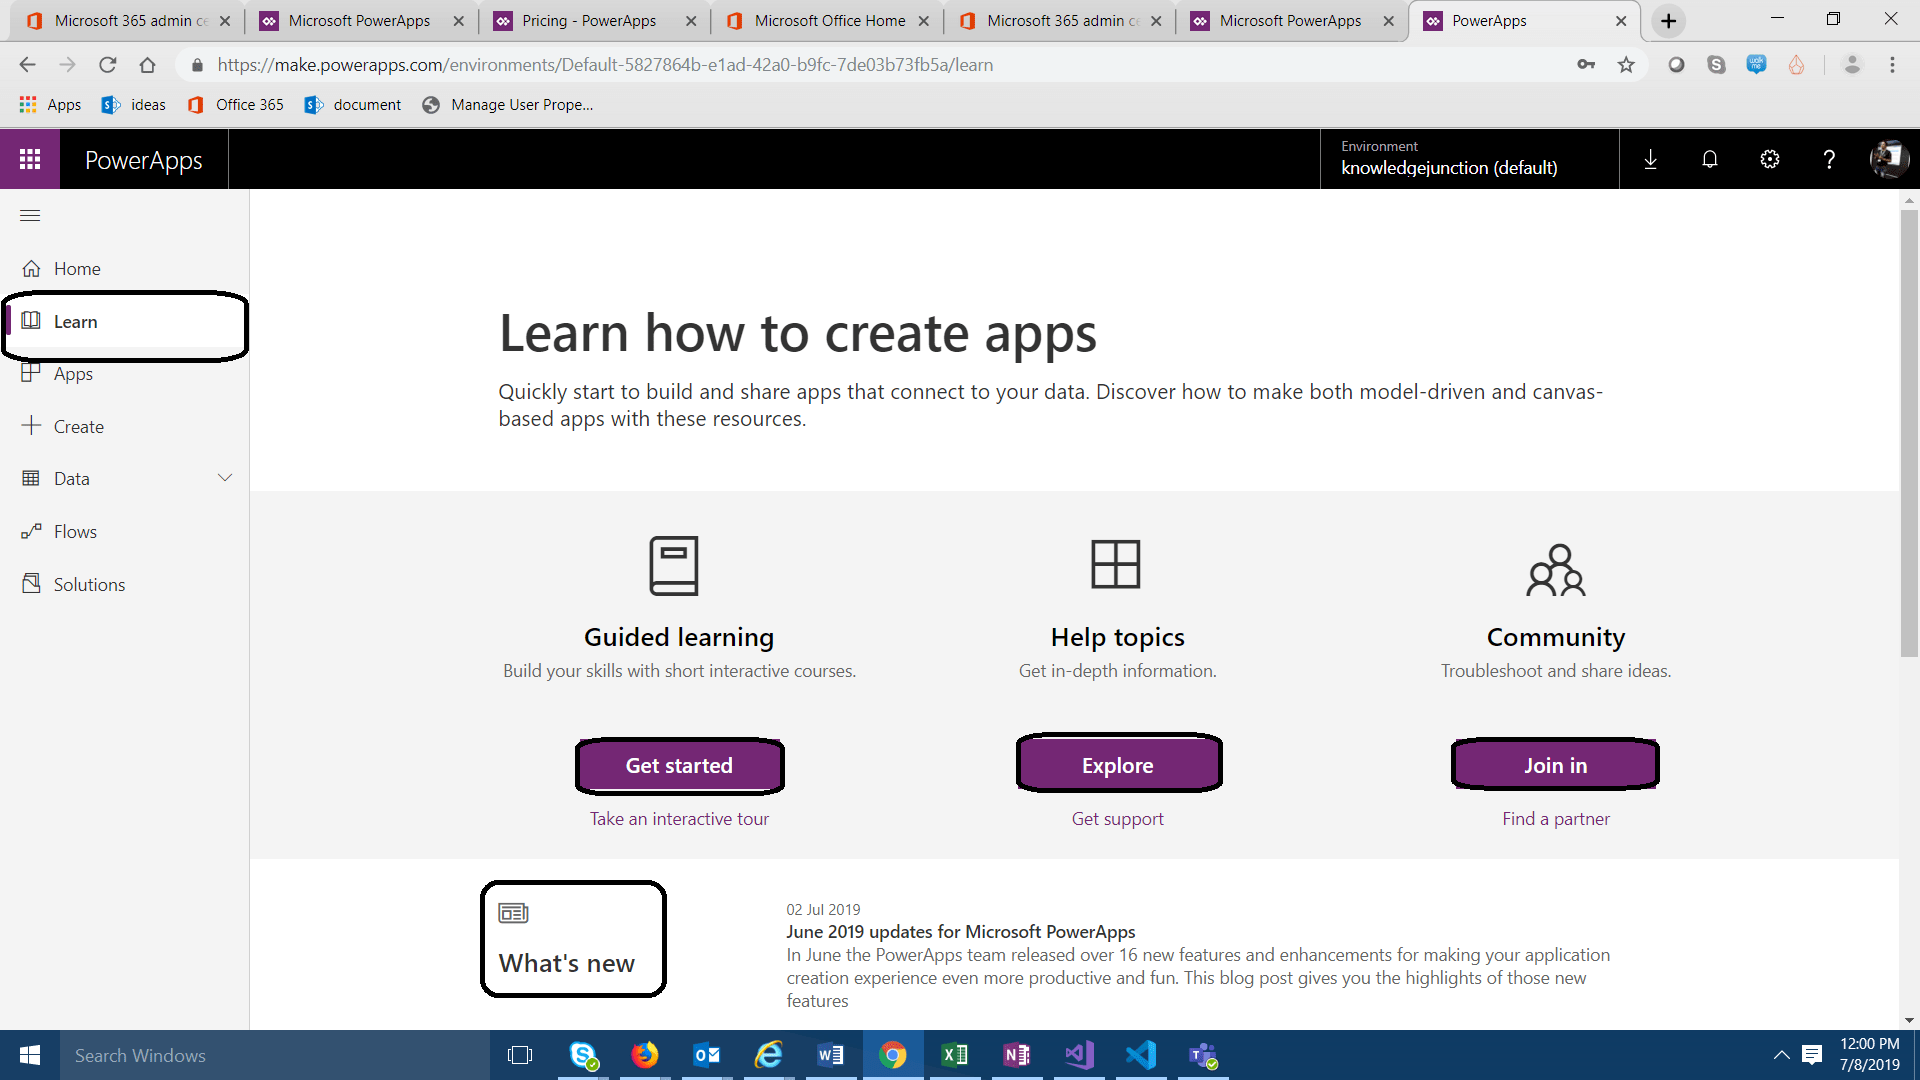 PowerApps – What is PowerApps for beginners? | Knowledge